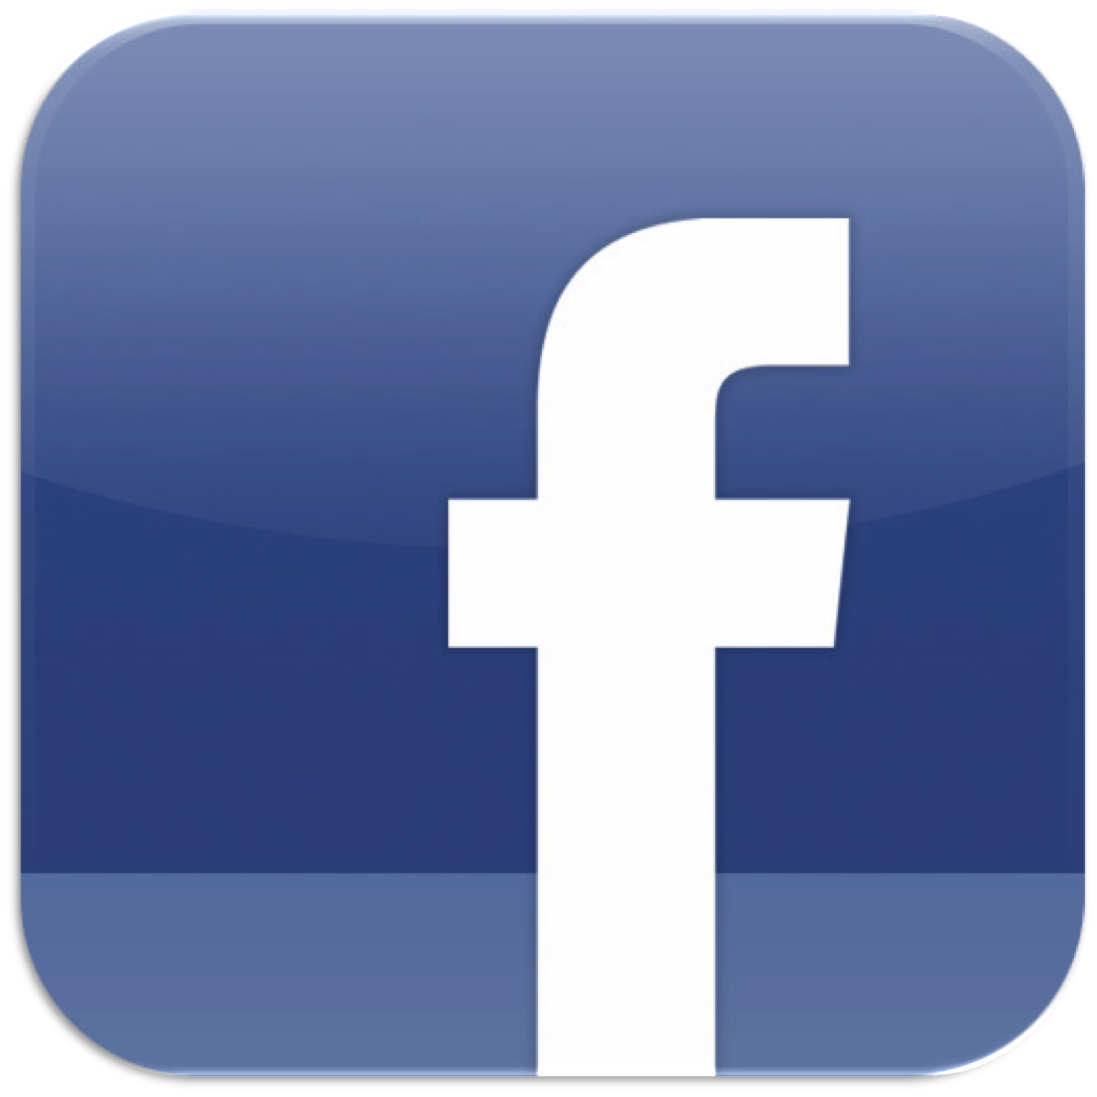 flirting signs on facebook free download without key